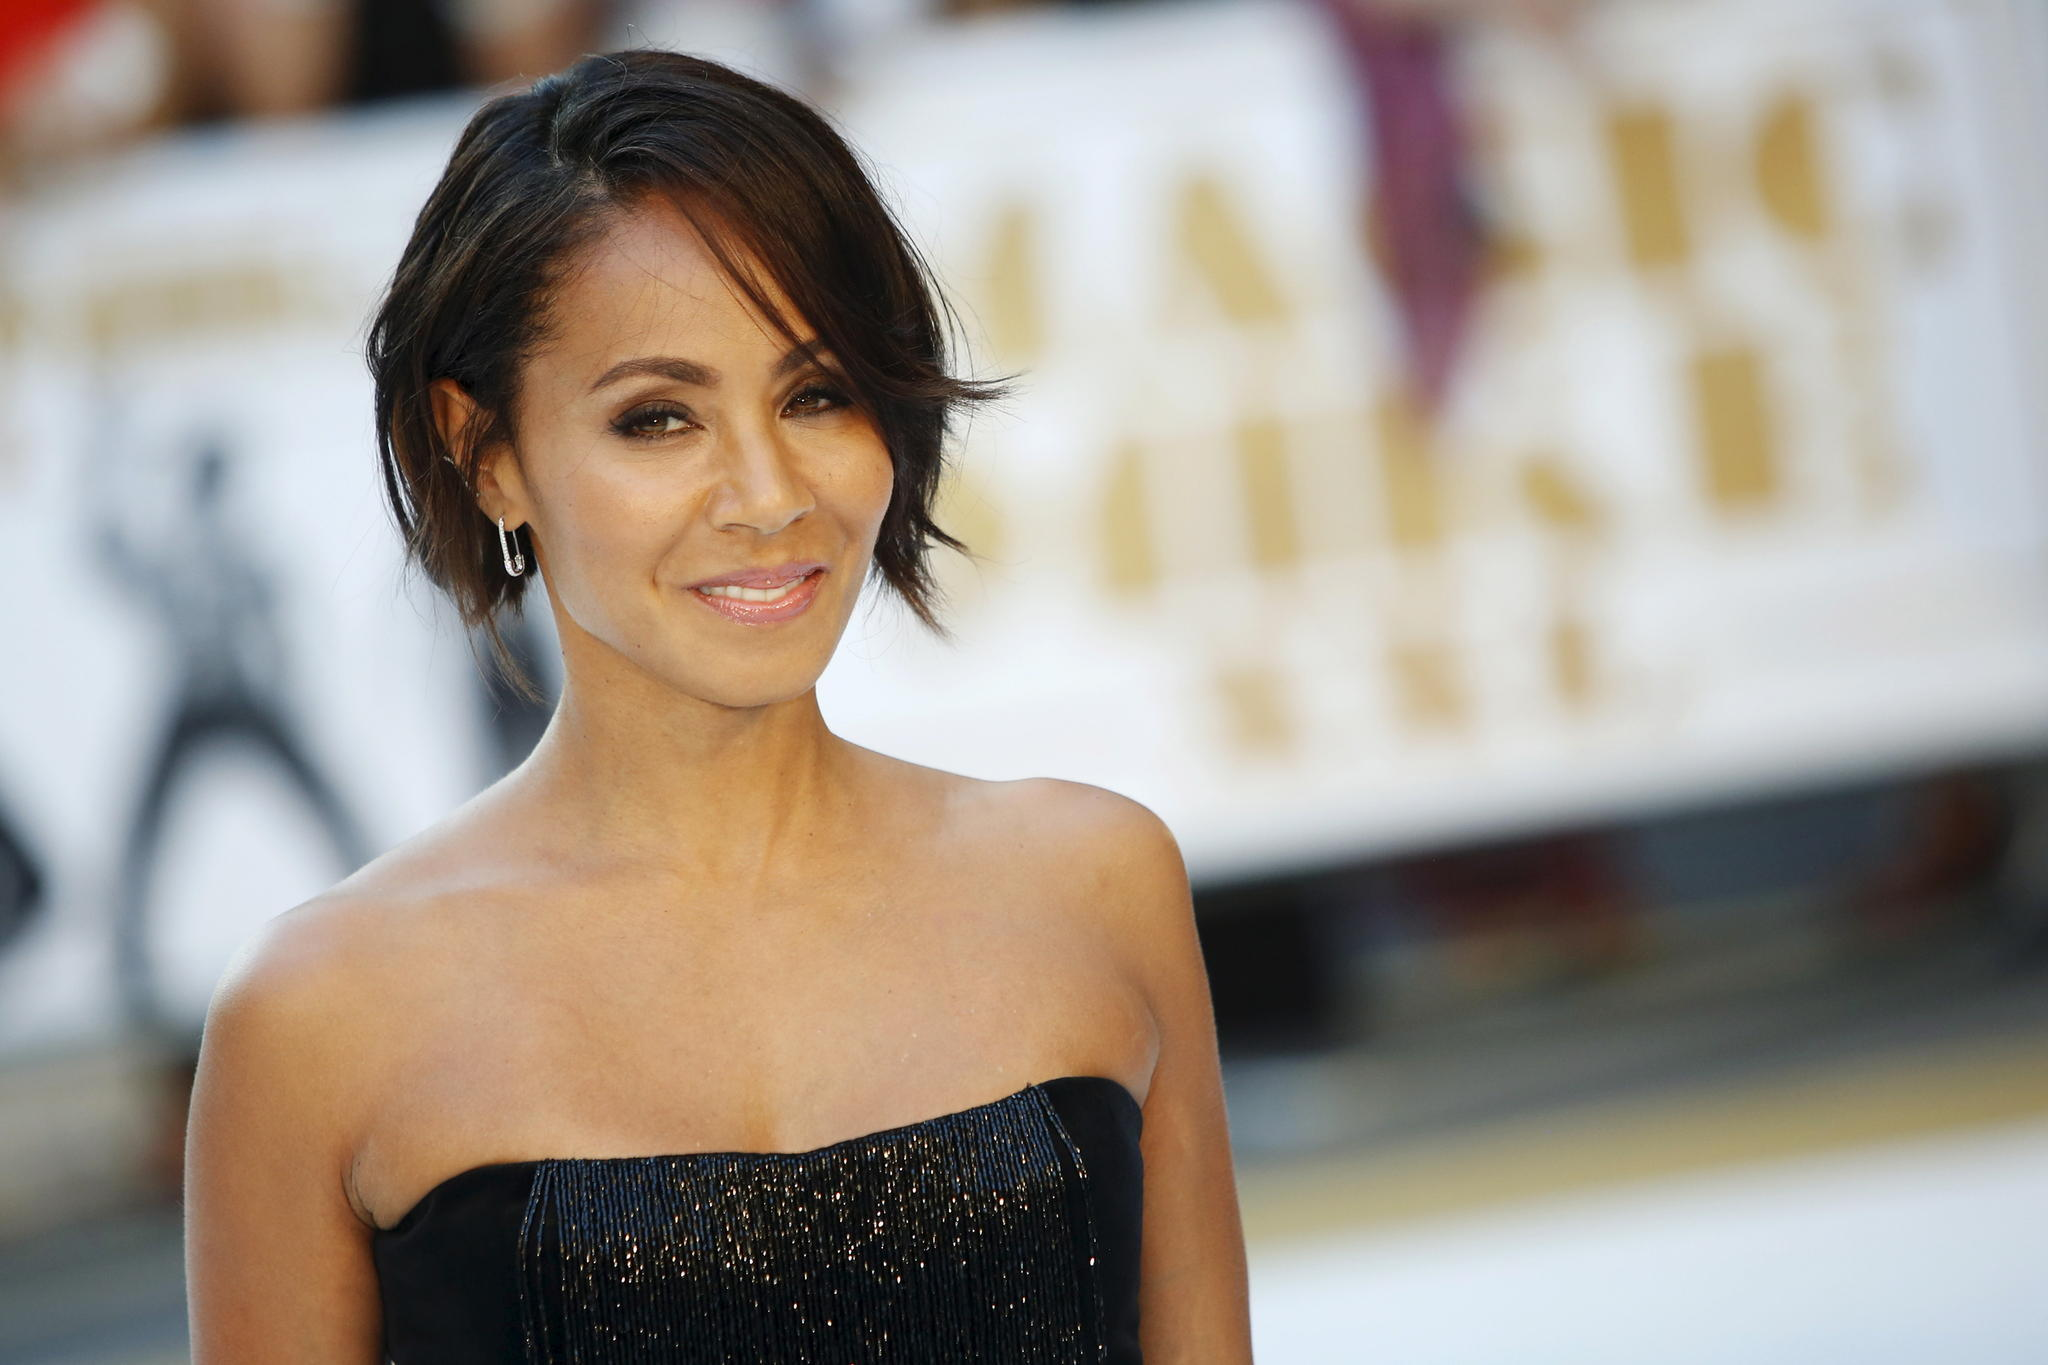 Jada Pinkett Smith war einst Drogendealerin